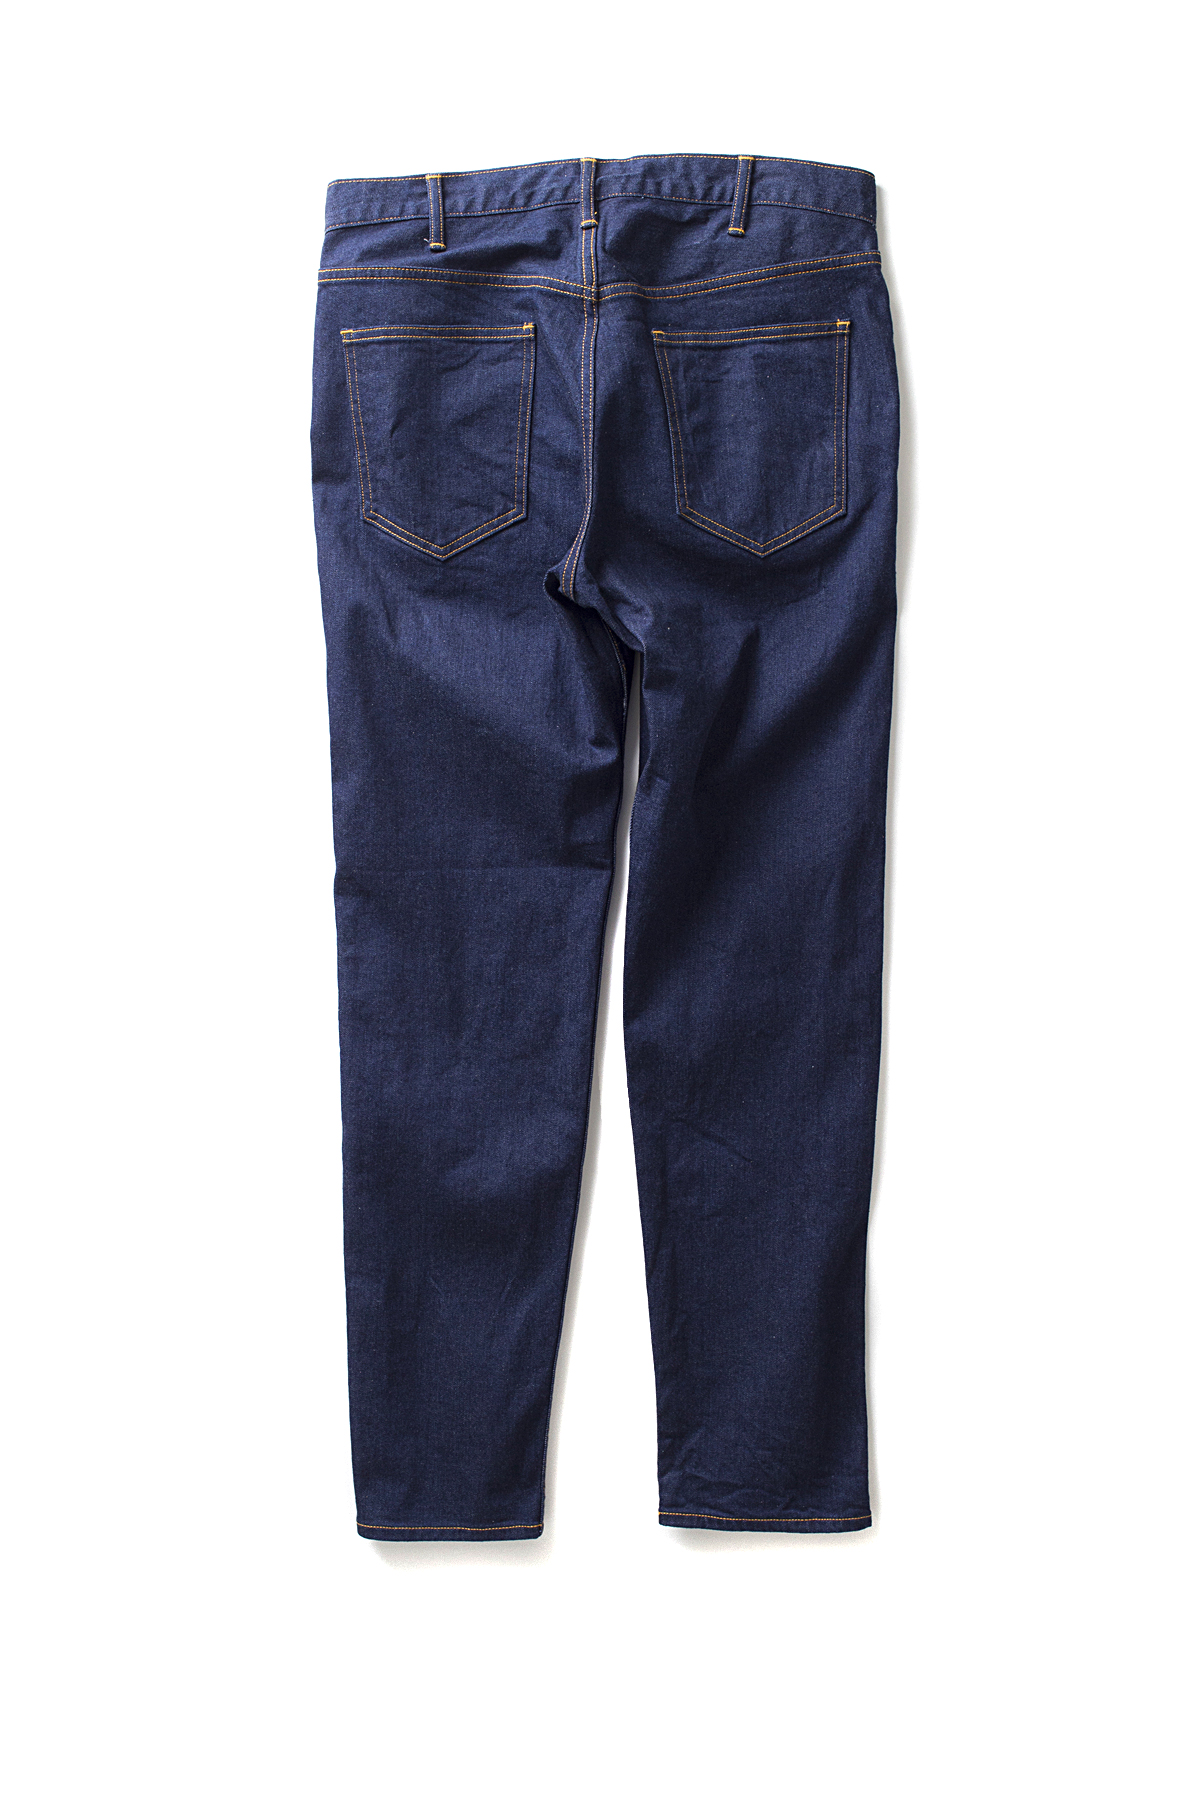 A vontade : 5 Pocket Jeans Super Slim Fit (Indigo One Wash)